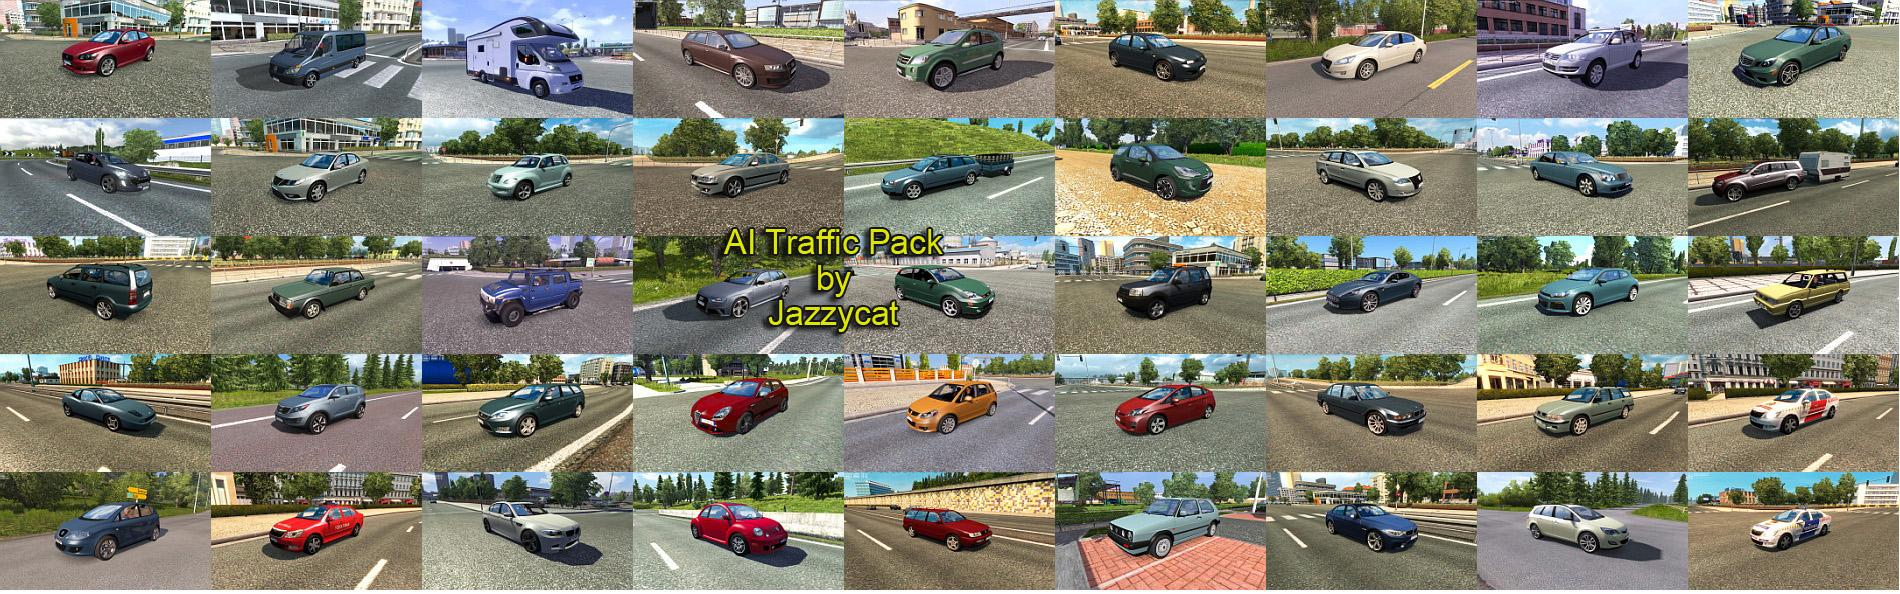 ai-traffic-pack-by-jazzycat-v3-6_1